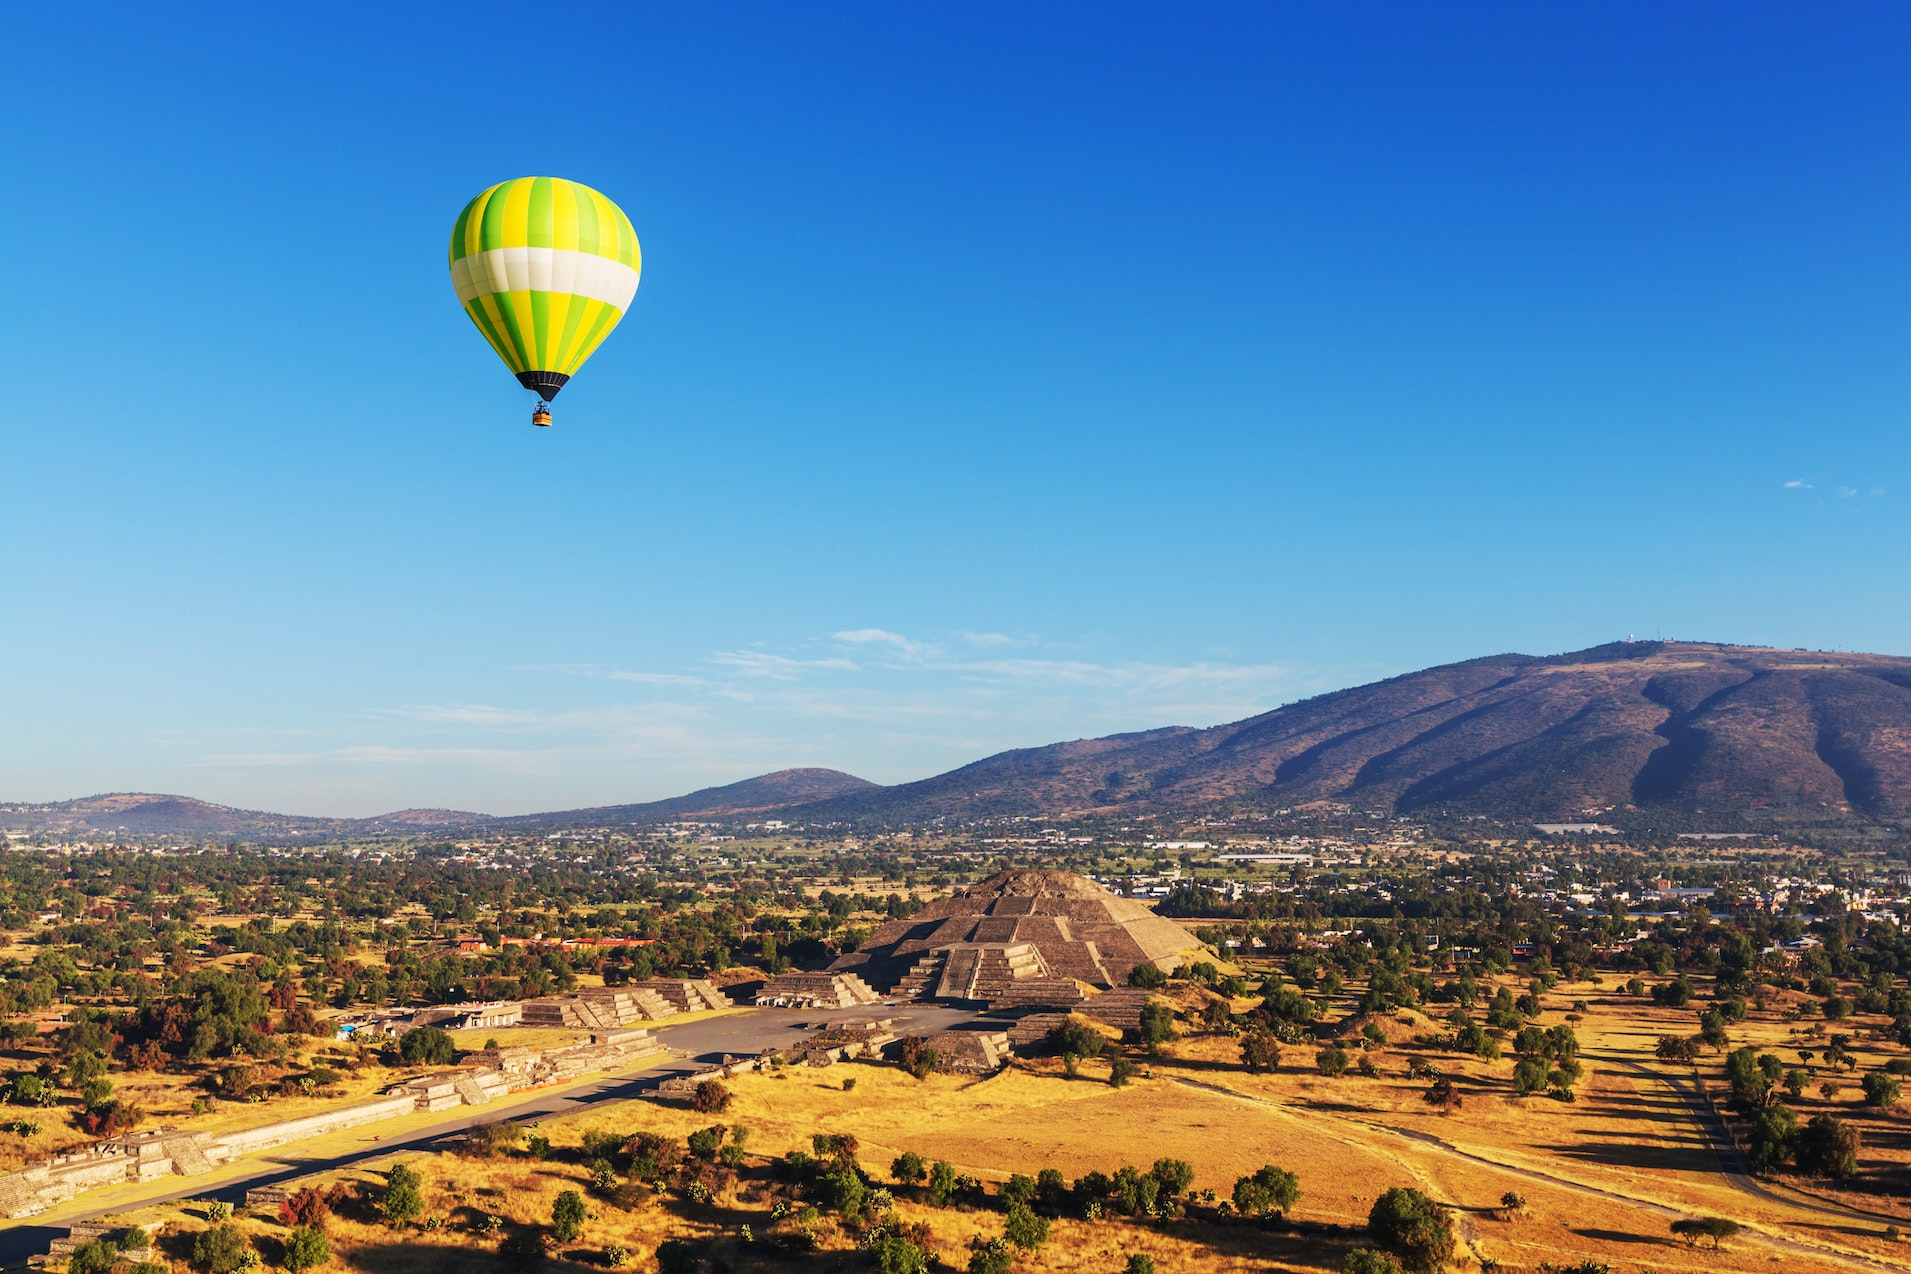 Teotihuacan is the site of some of the most significant, still-standing Mesoamerican pyramids.